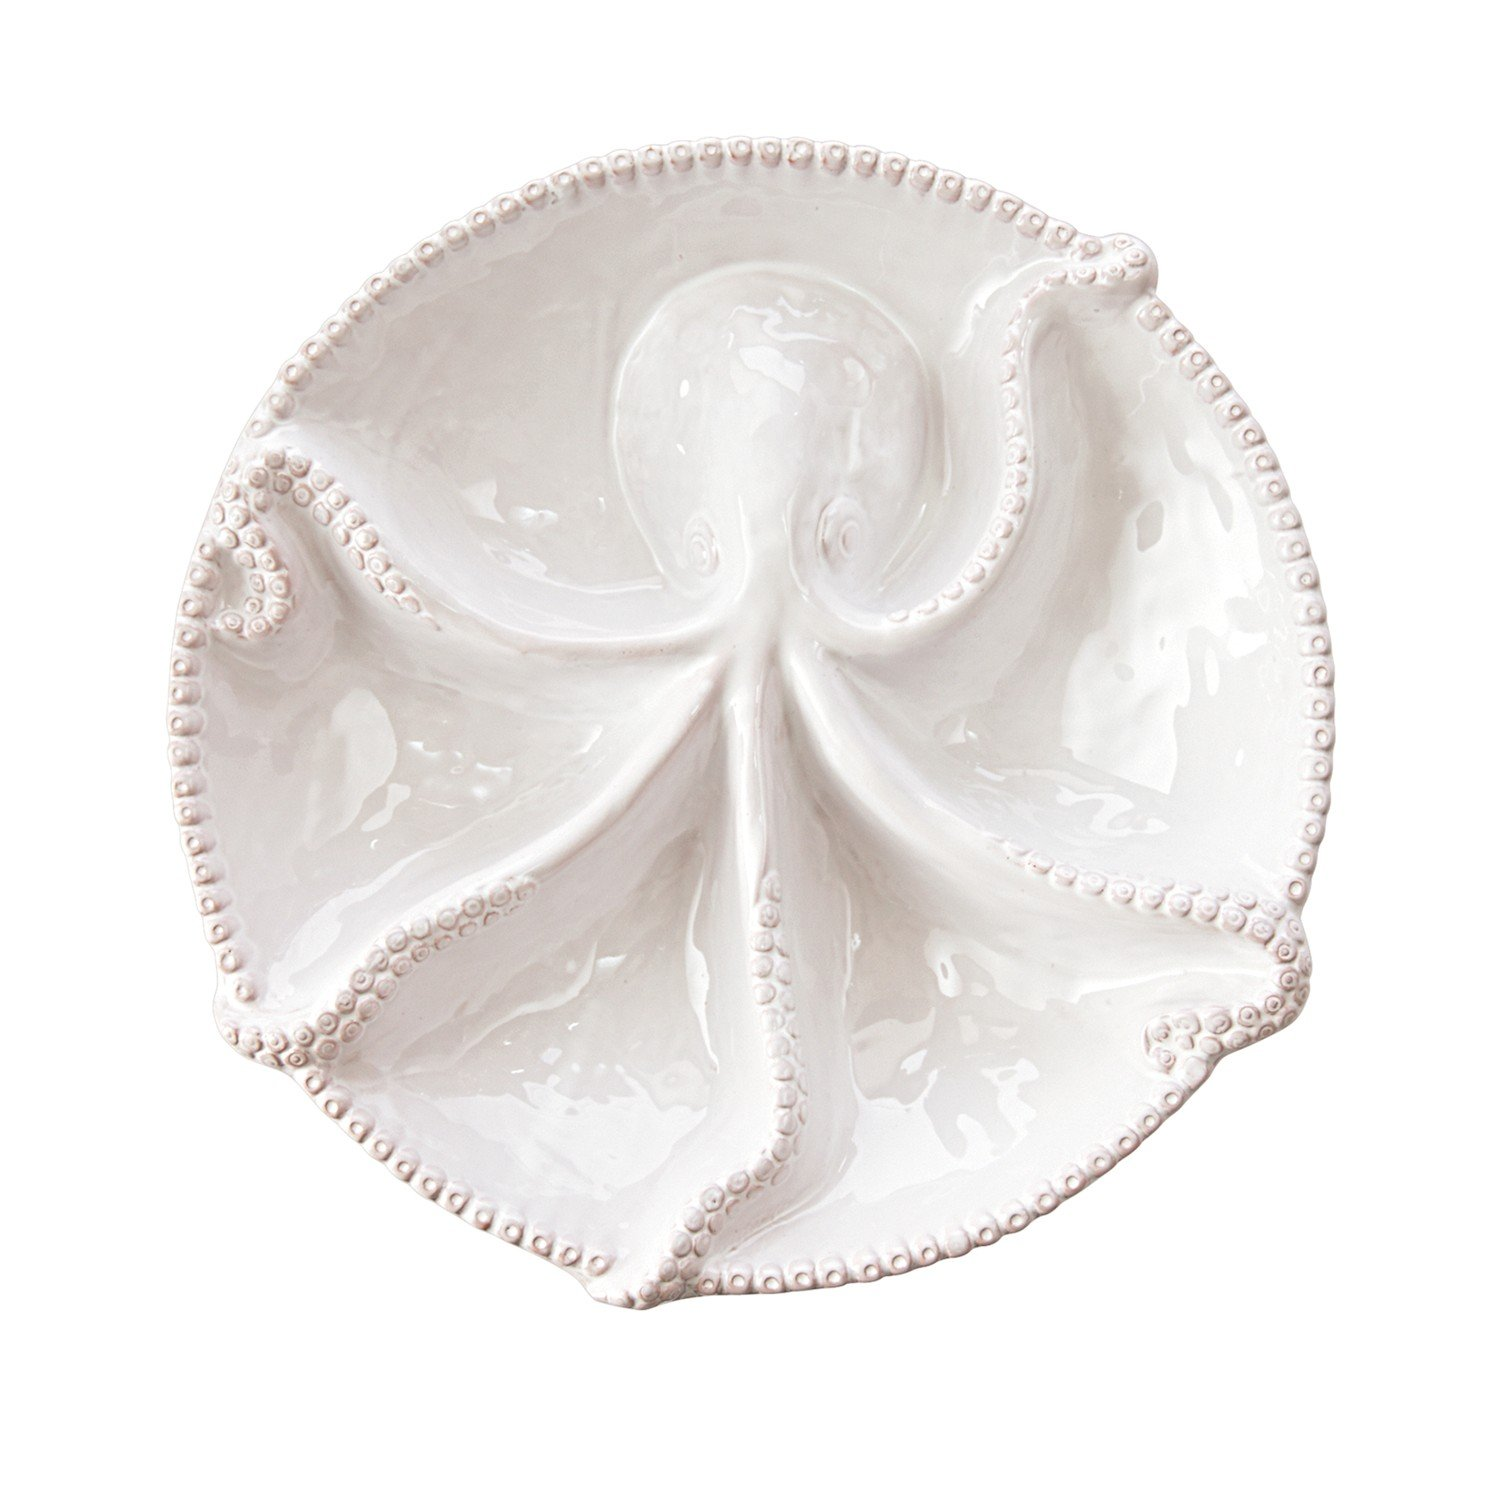 Mud Pie 4071175 Octopus Section Platter Serving Bowl, One Size, White